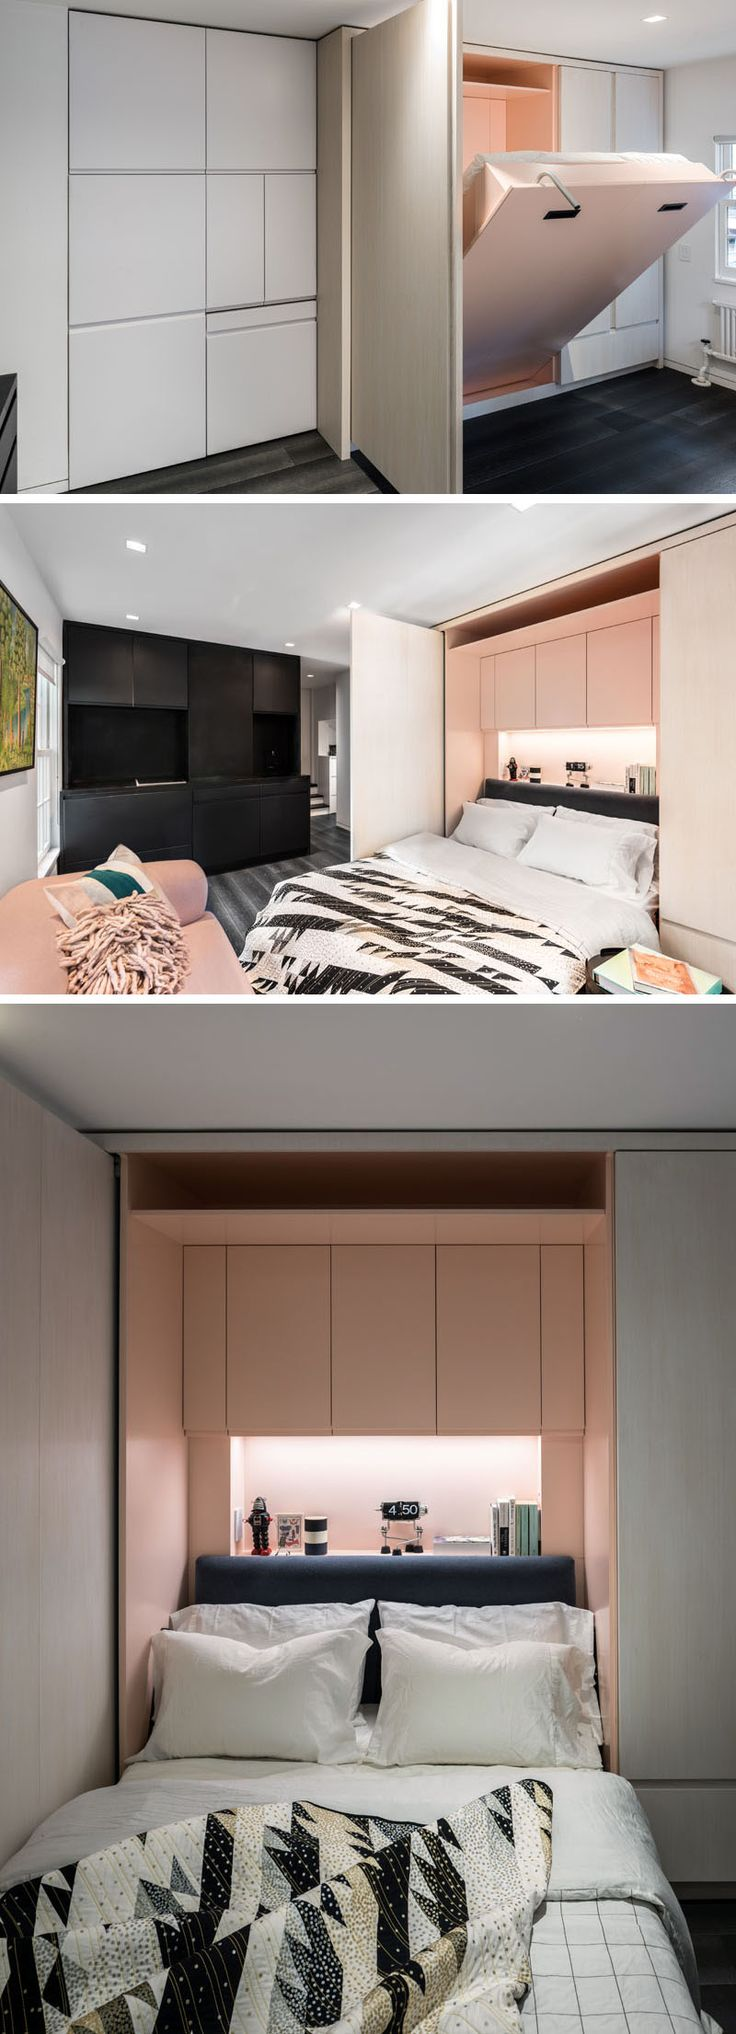 This micro apartment has a wall of cabinets, and within the wooden section is a bed. The bed folds down to reveal a headboard and even more storage space, as well as hidden lighting.